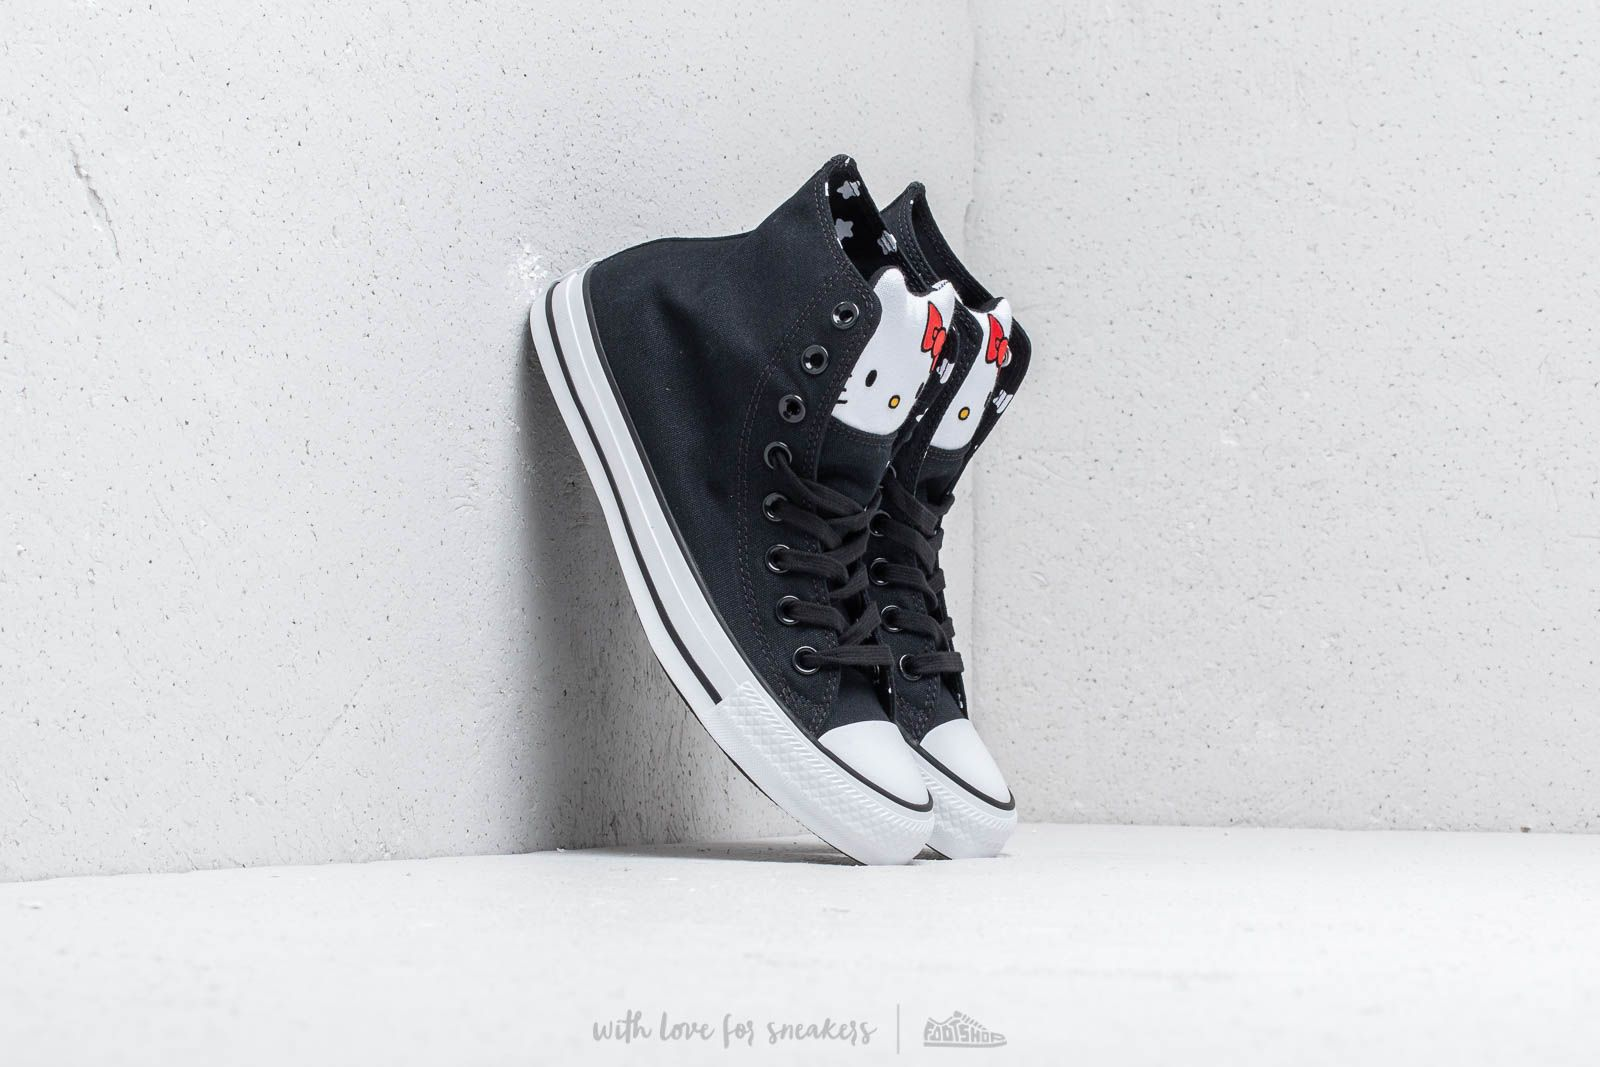 088ca22bff5efb Converse x Hello Kitty Chuck Taylor All Star Hi Black  Fiery Red  White at